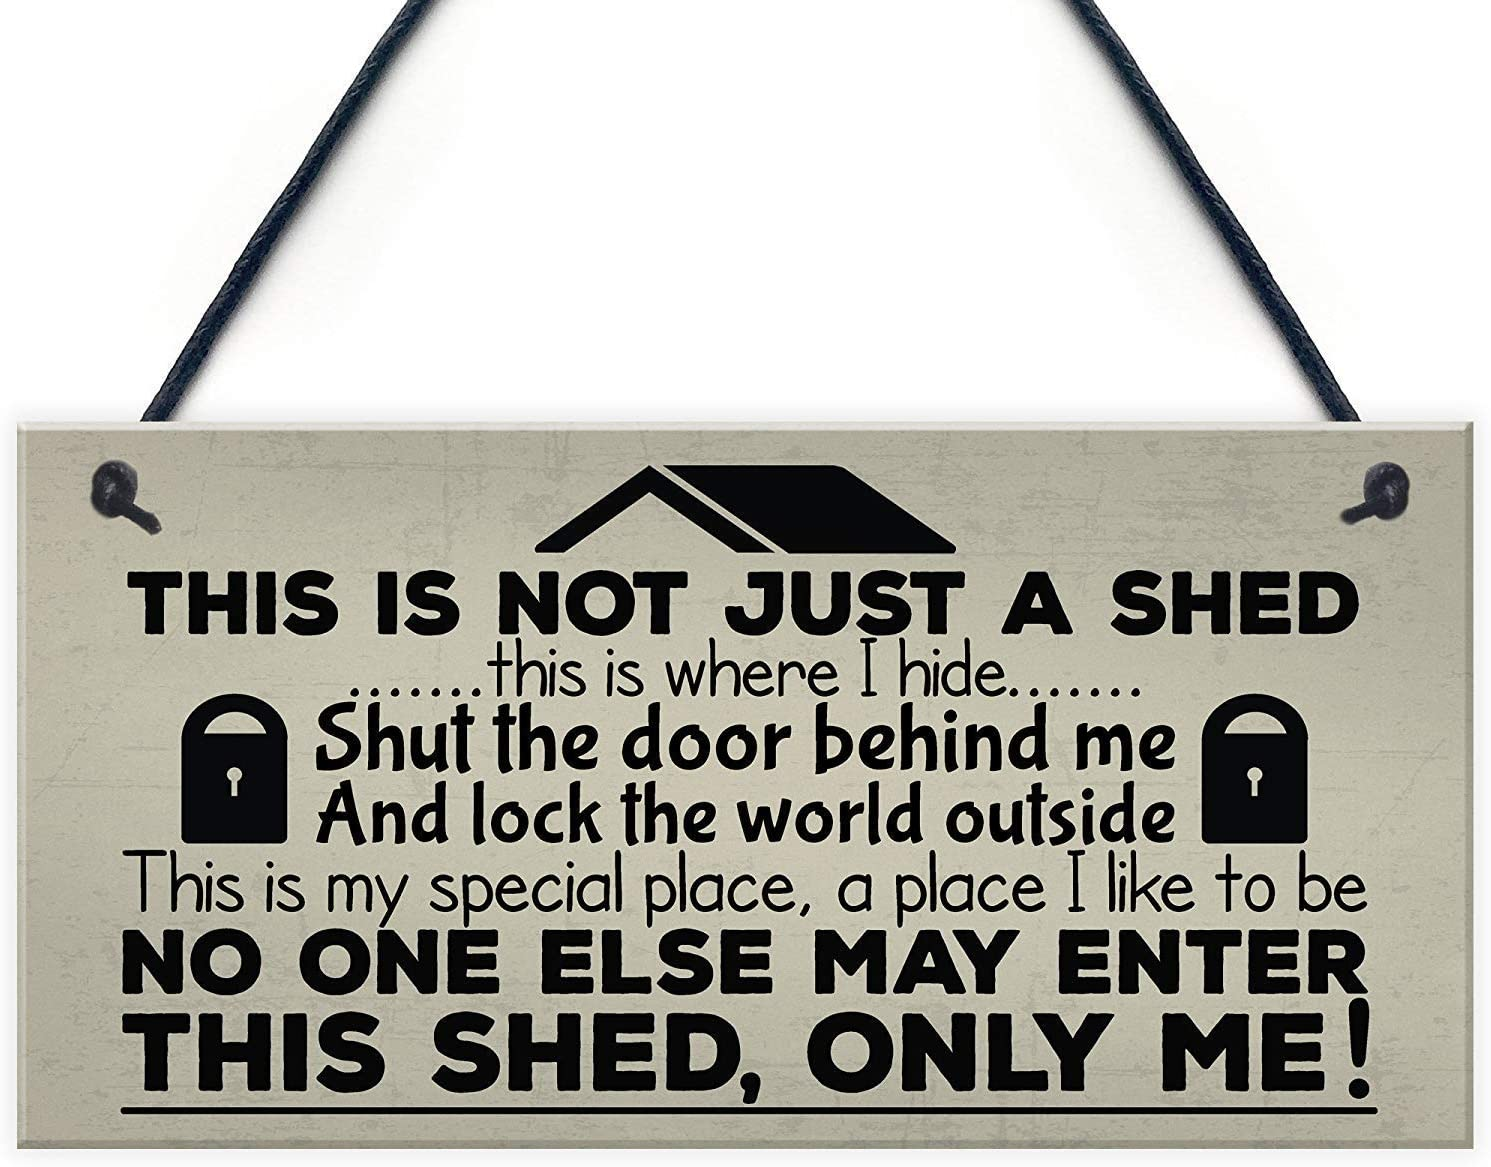 Aianhe This is Not Just a Shed Wood Garden Signs for Friends, Families Gifts 10 x 5 Inches